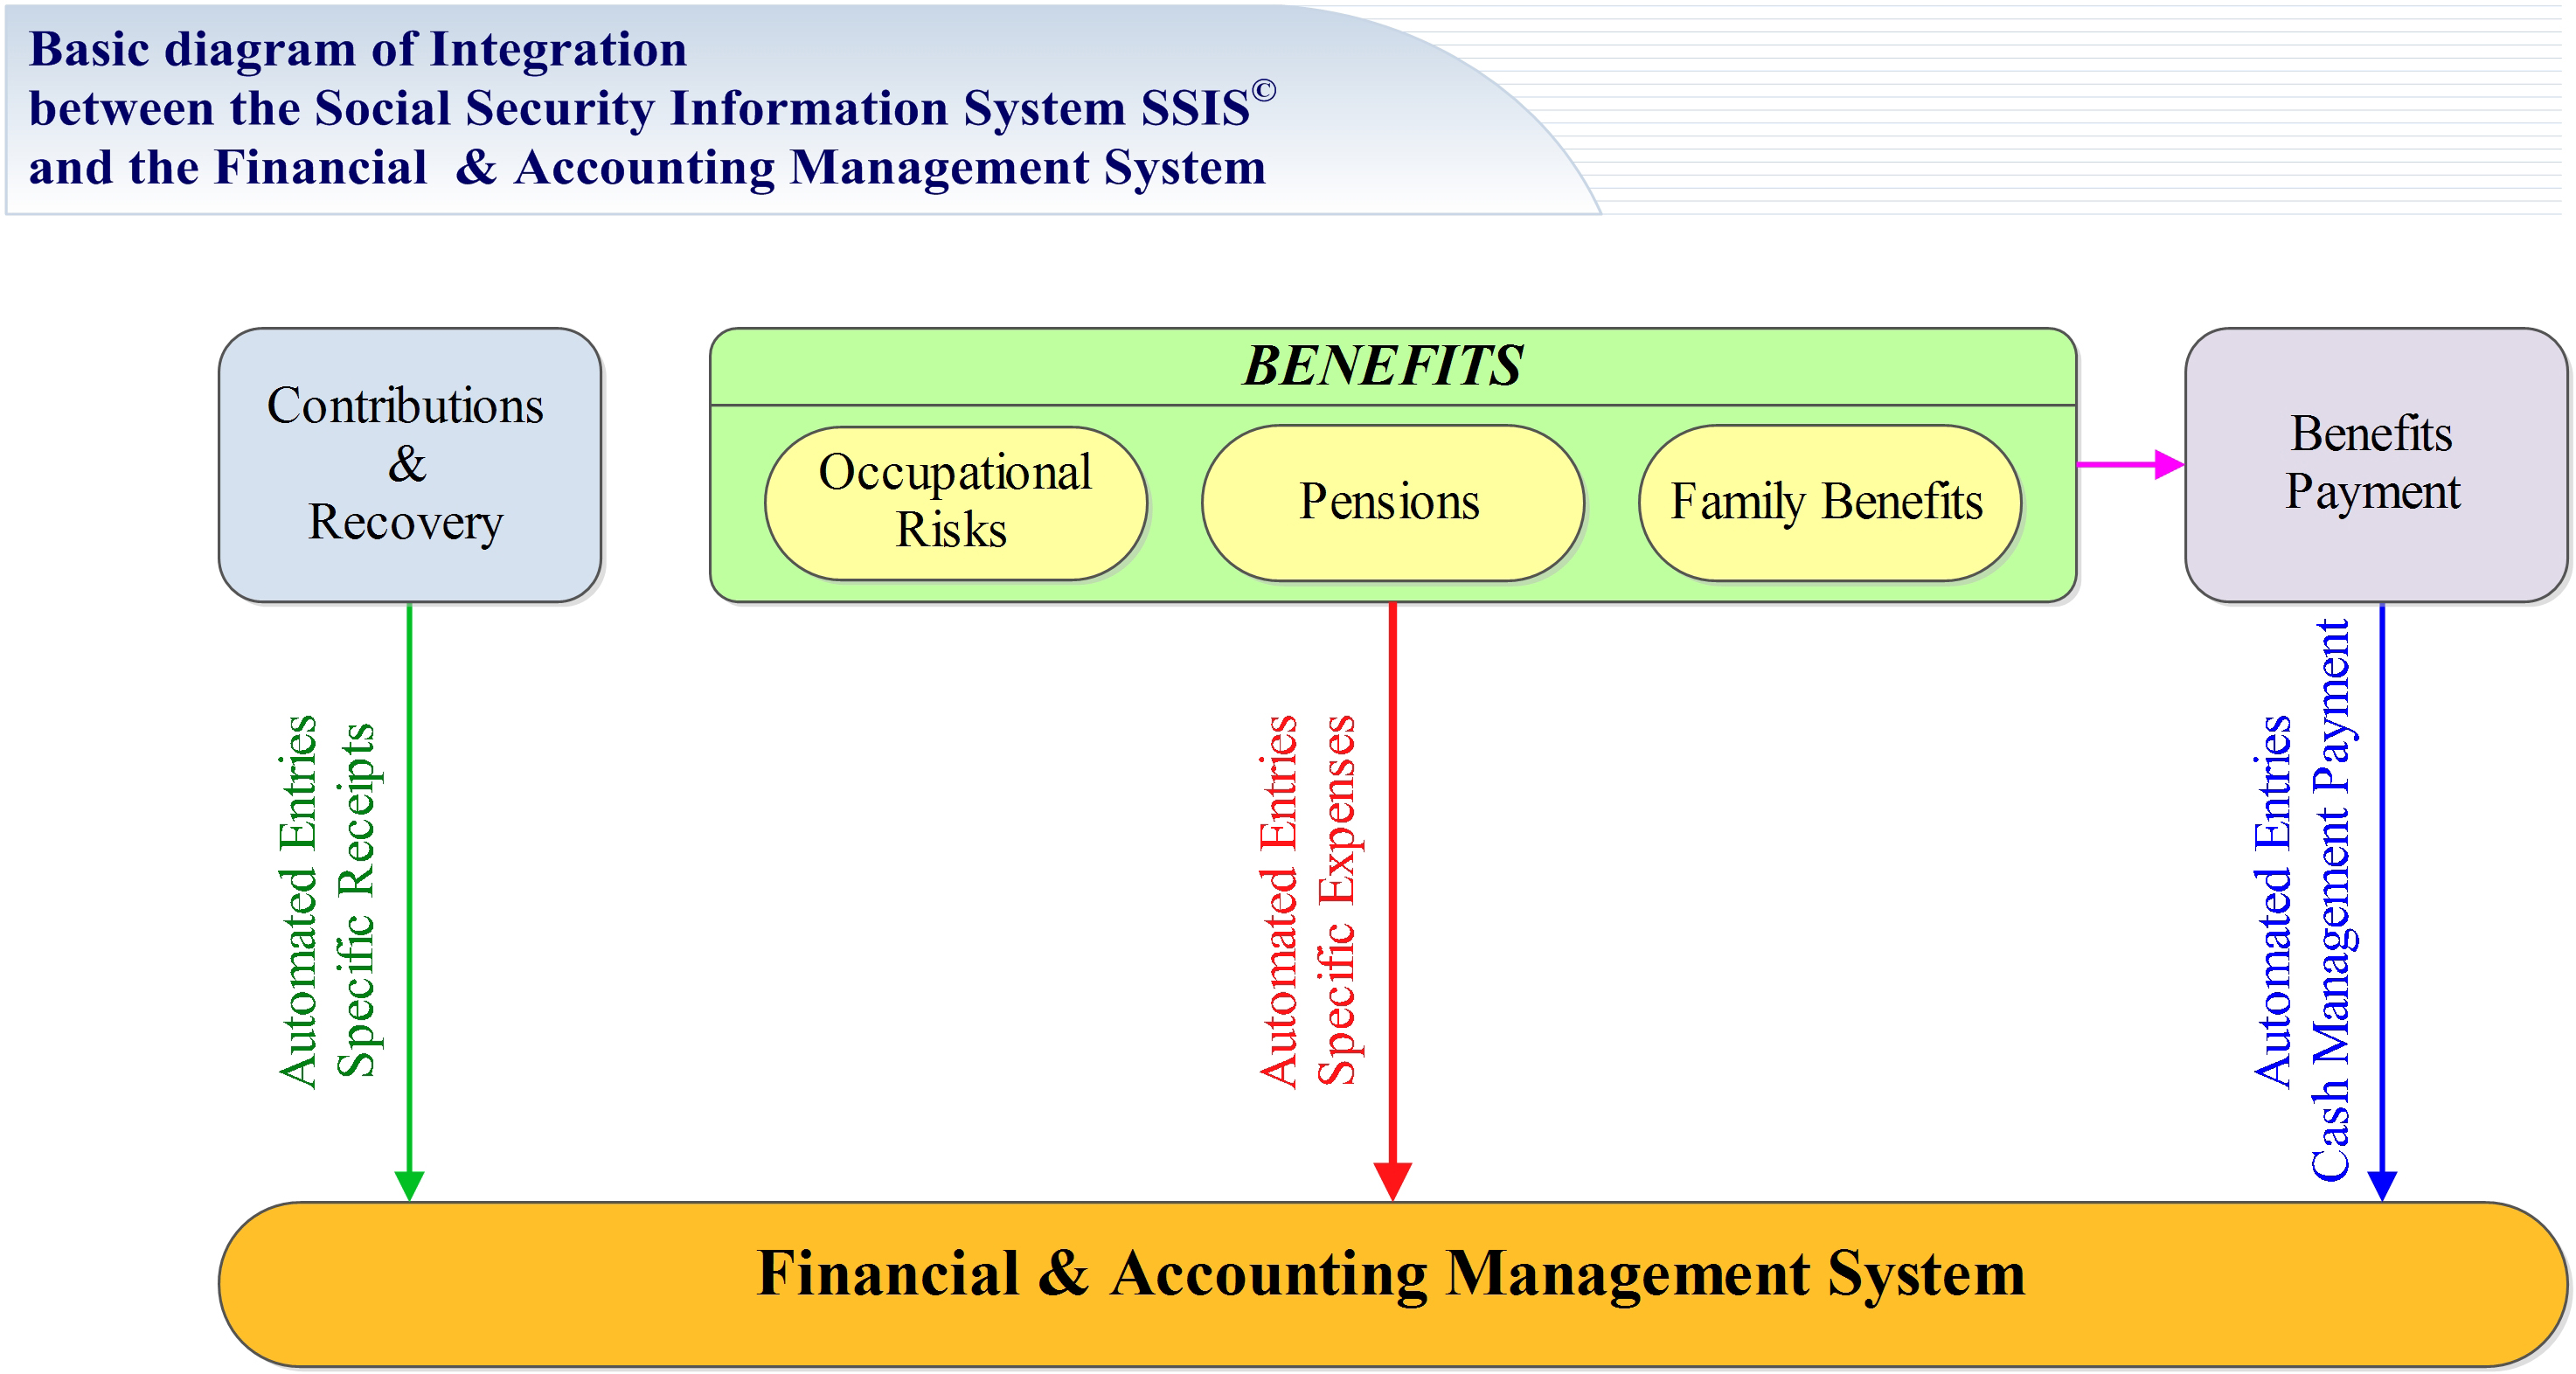 integrated accounting system Online payroll services phone/fax payroll software specialty payroll integrated solutions accounting solutions our partners help ips, , web employee, ipay, and a sensible solutions to payroll are trademarks and service marks of integrated payroll systems, inc.